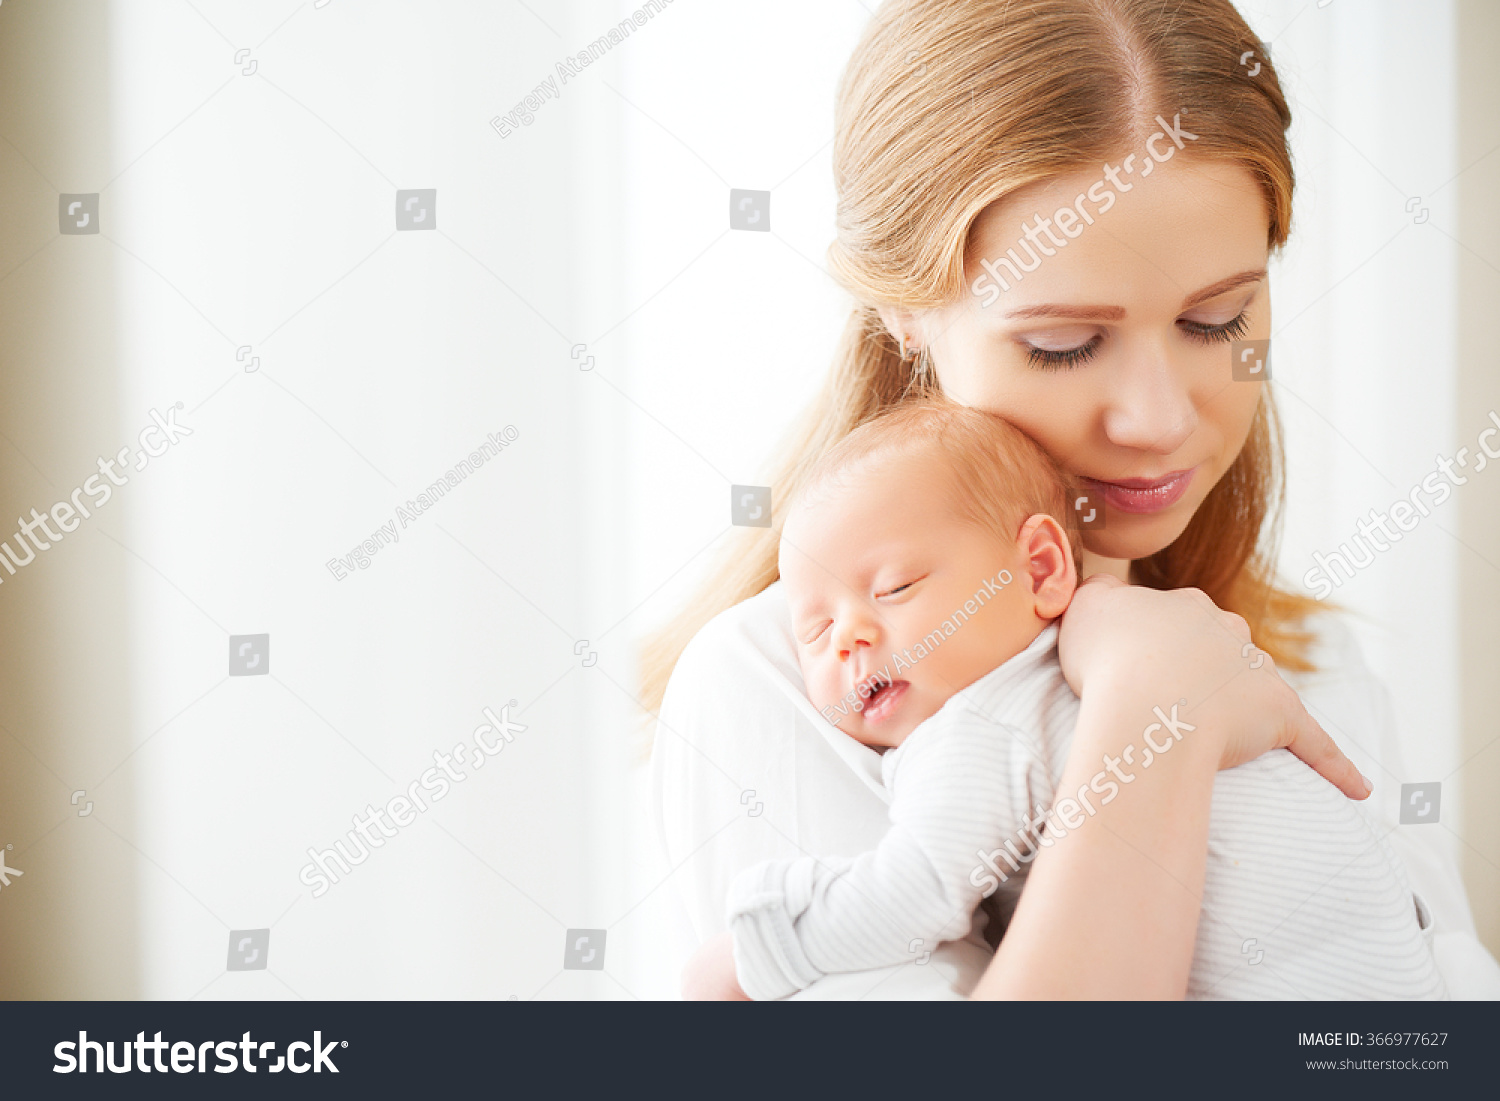 4af3aeedc Newborn Baby Tender Embrace Mother Window Stock Photo (Edit Now ...